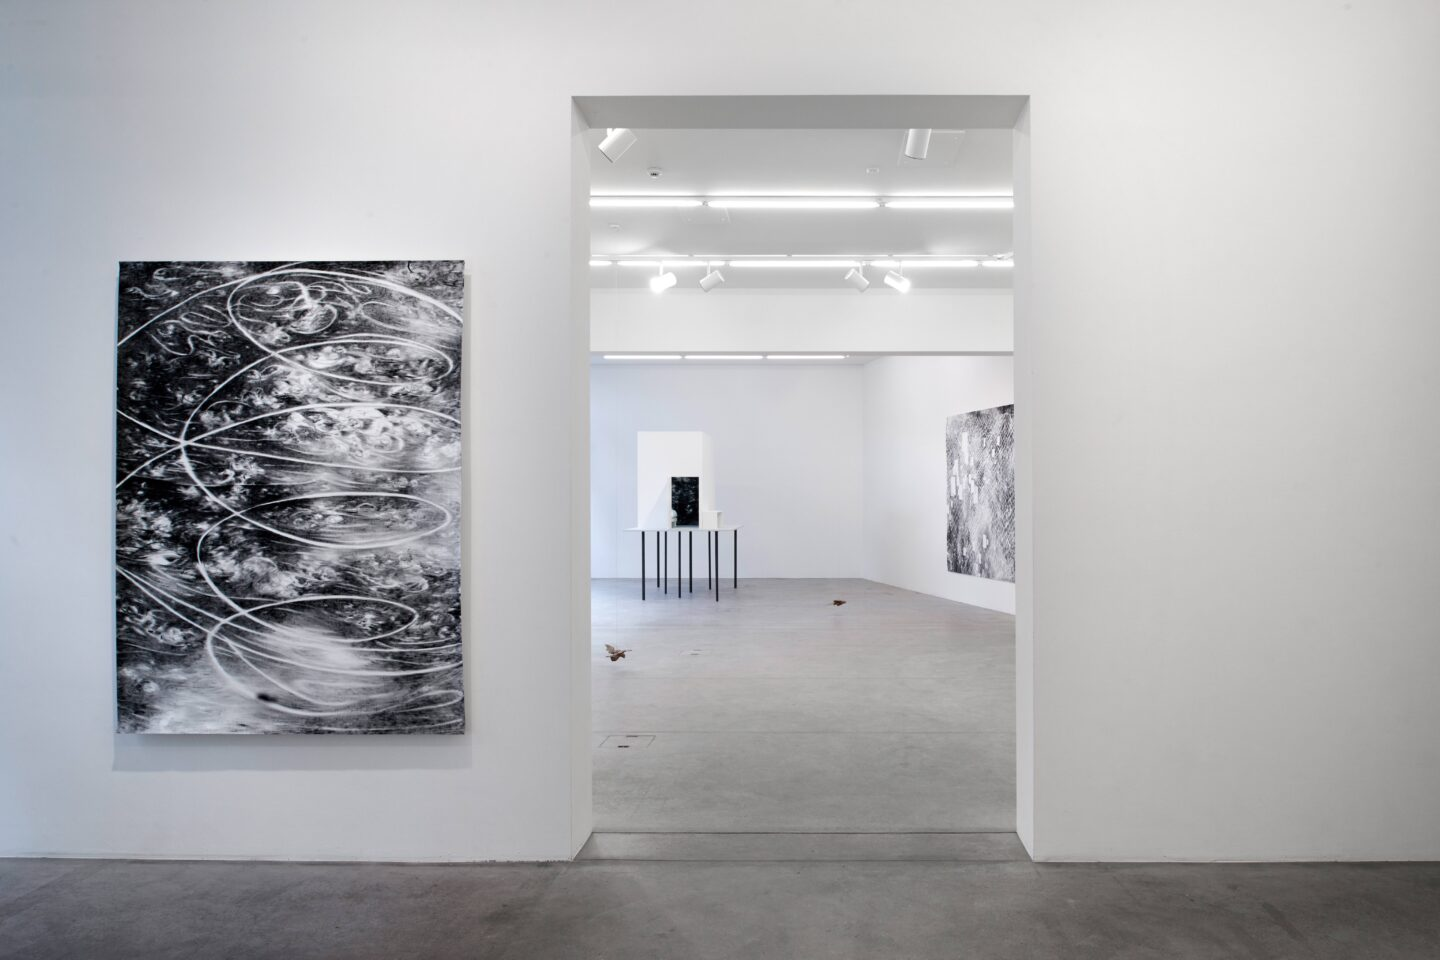 Exhibition View Julia Steiner Soloshow «Circular Flight» at Galerie Urs Meile, Lucerne, 2020 / Photo: © Galerie Urs Meile / Courtesy: the artist and Galerie Urs Meile